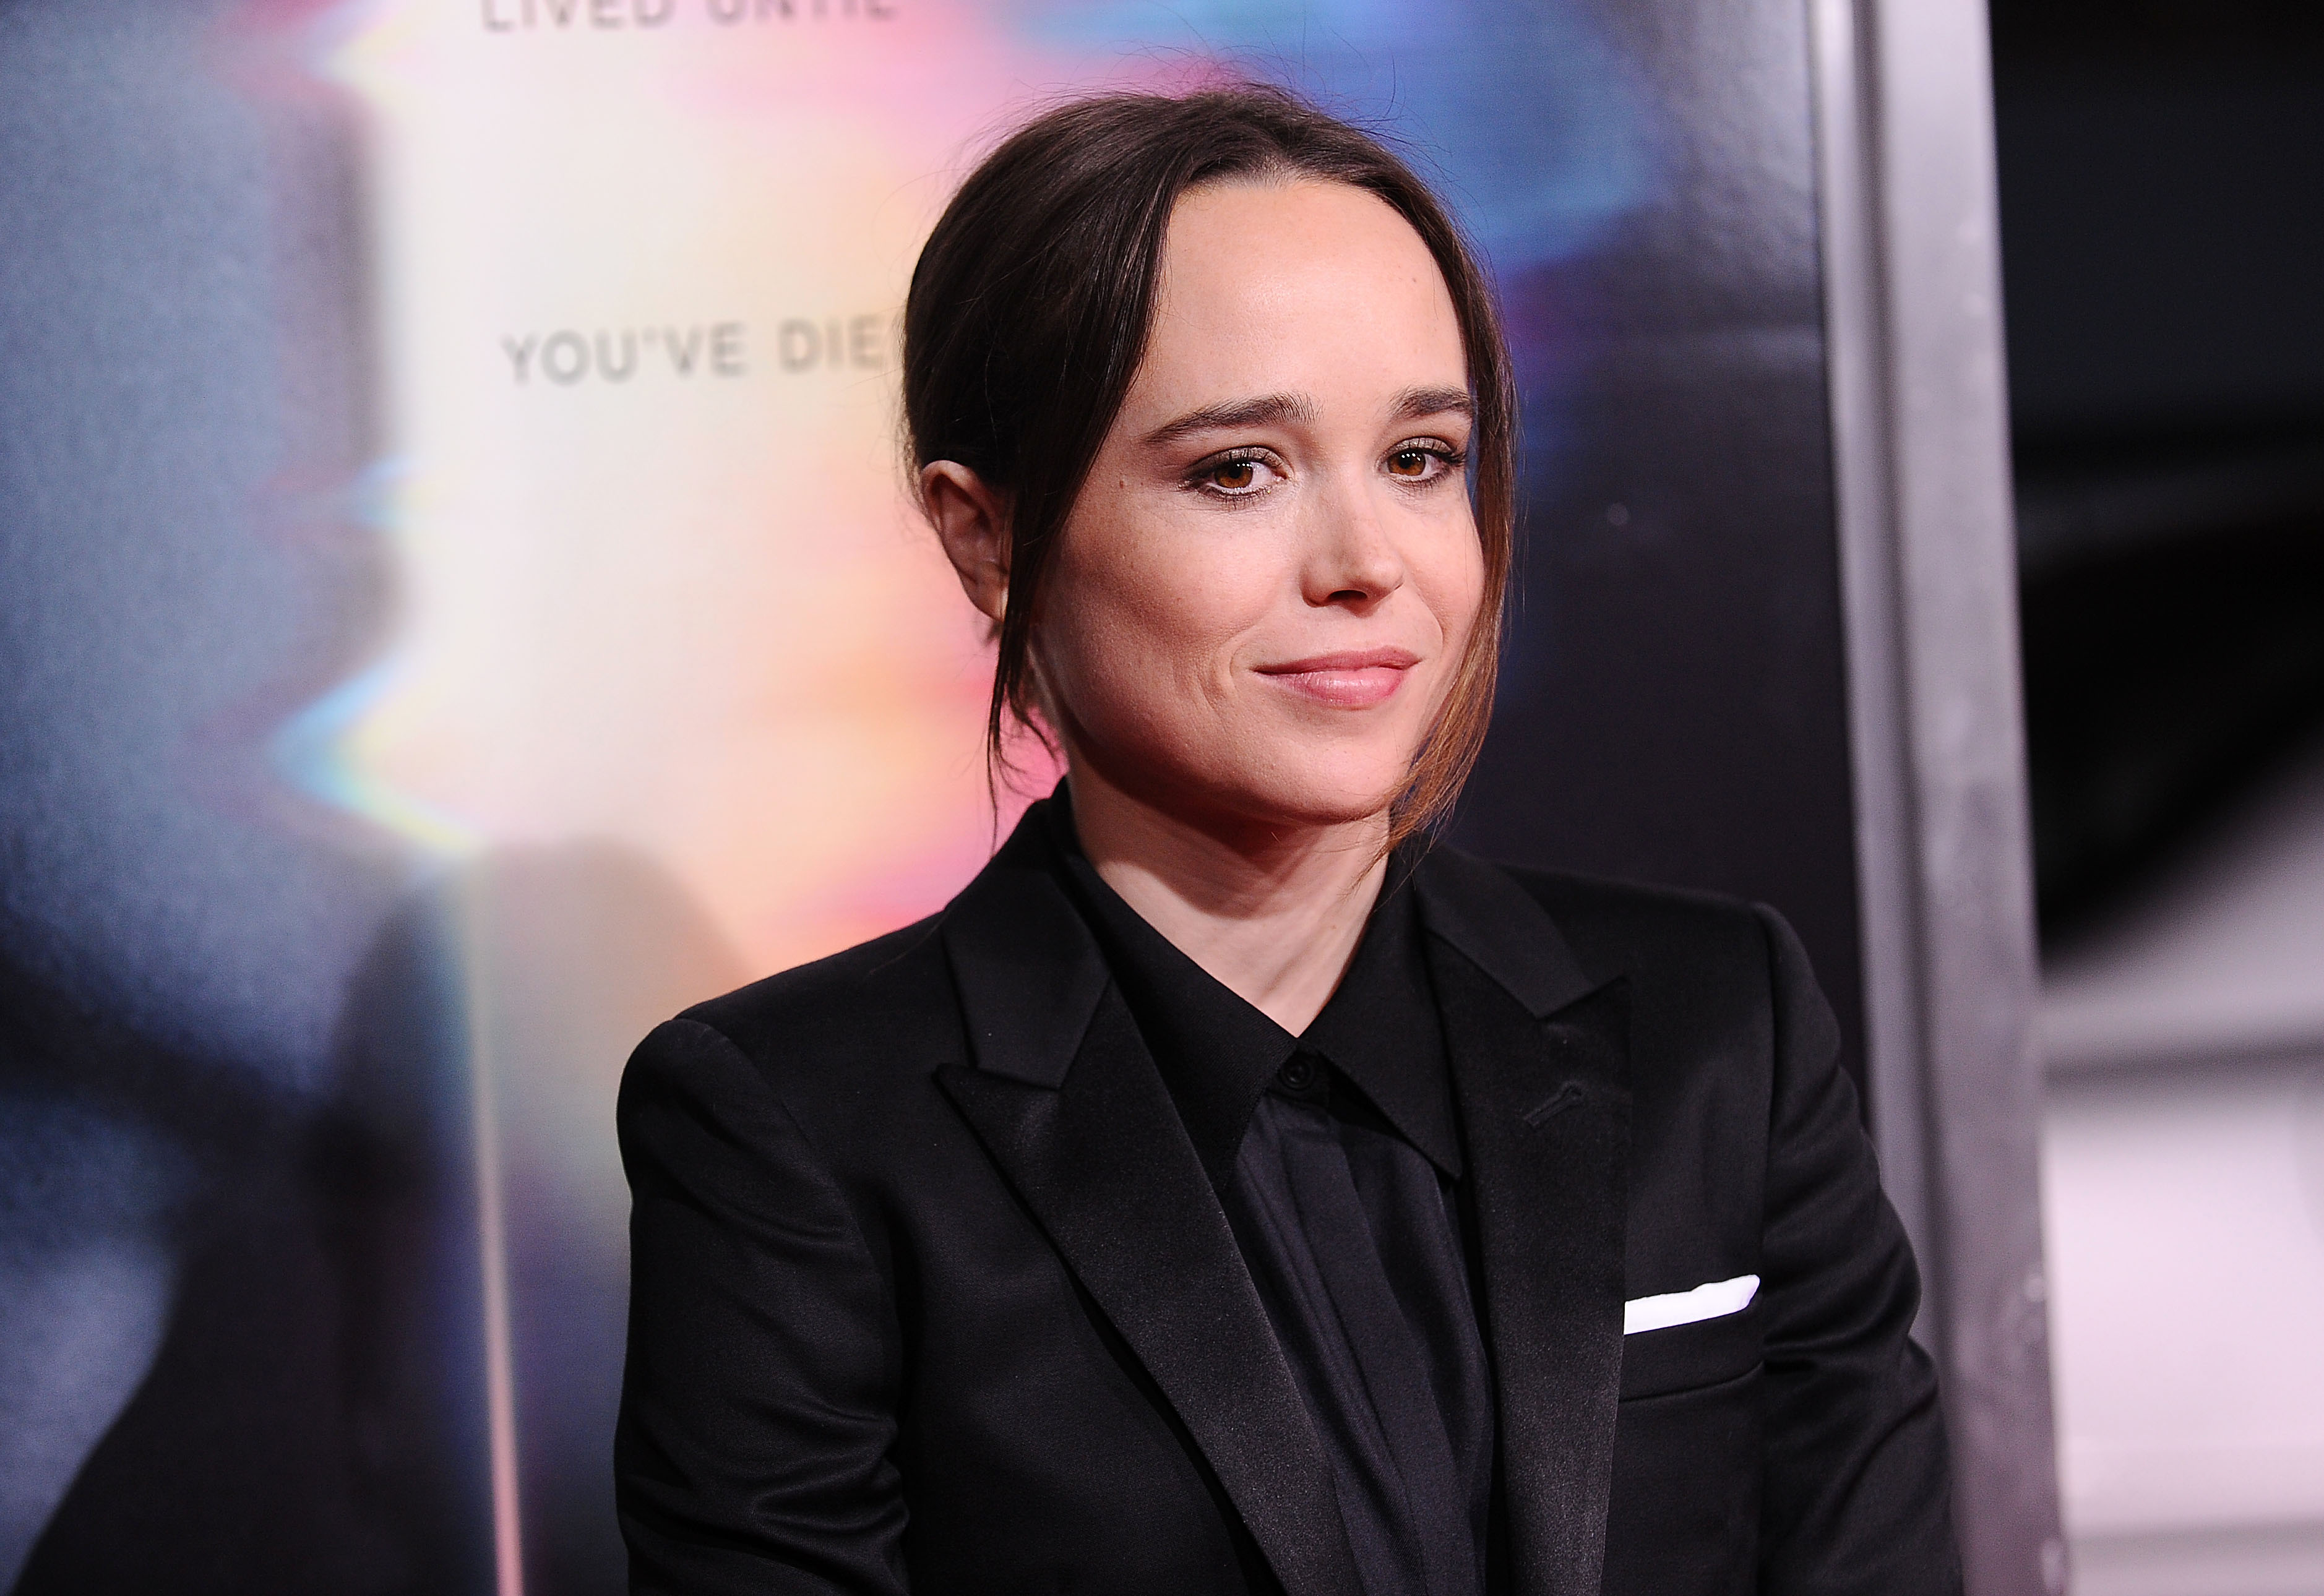 LOS ANGELES, CA - SEPTEMBER 27: Actress Ellen Page attends the premiere of  Flatliners  at The Theatre at Ace Hotel on September 27, 2017 in Los Angeles, California. (Photo by Jason LaVeris/FilmMagic)